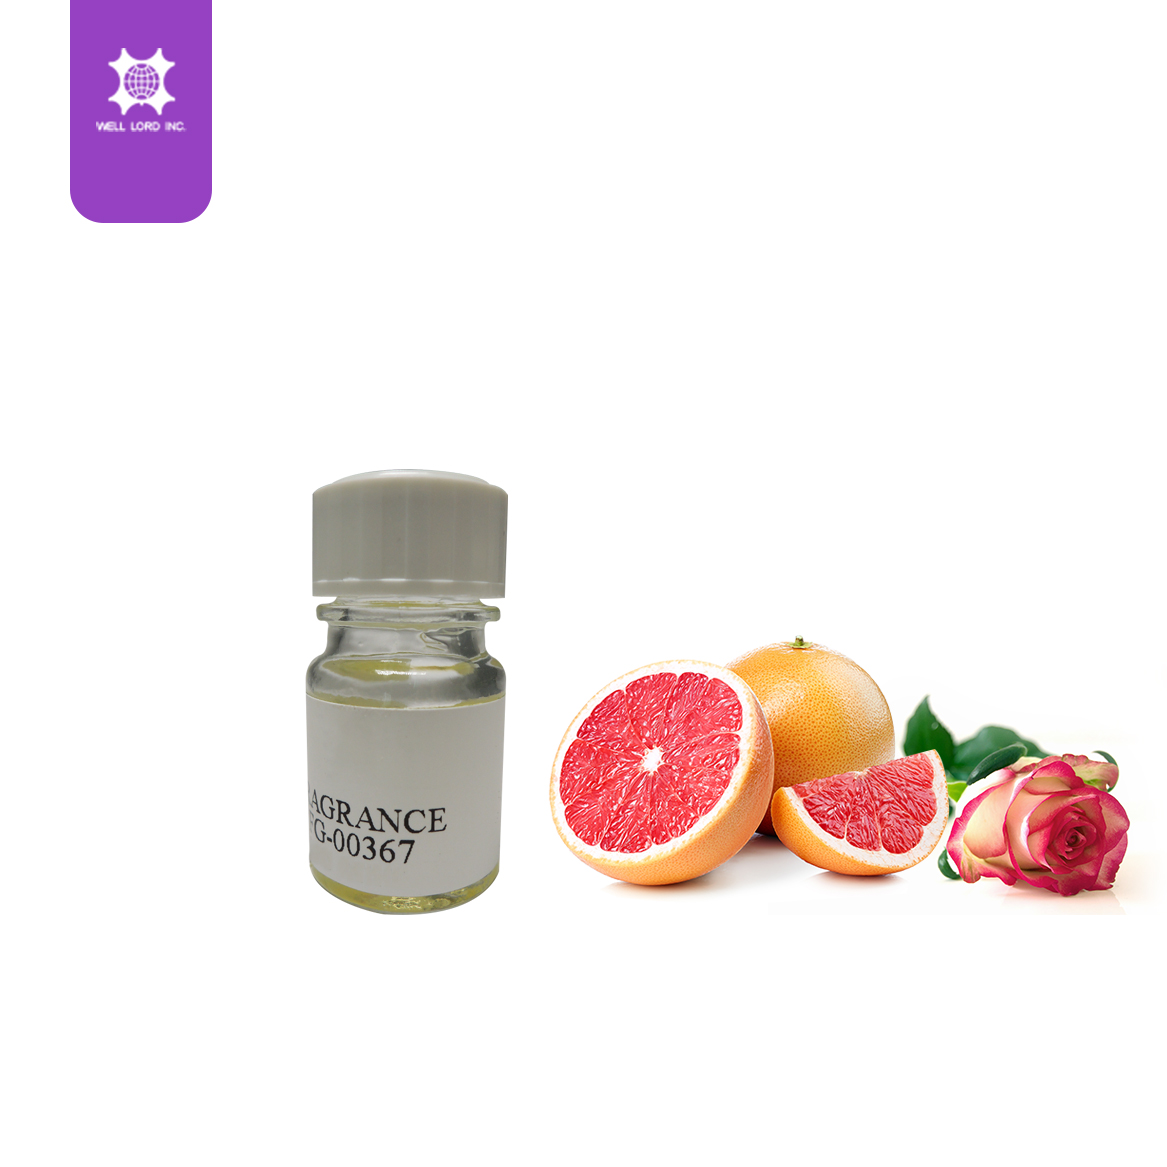 Refreshing and crown pleasing in hot summer fruity scent wholesale perfume cologne for men